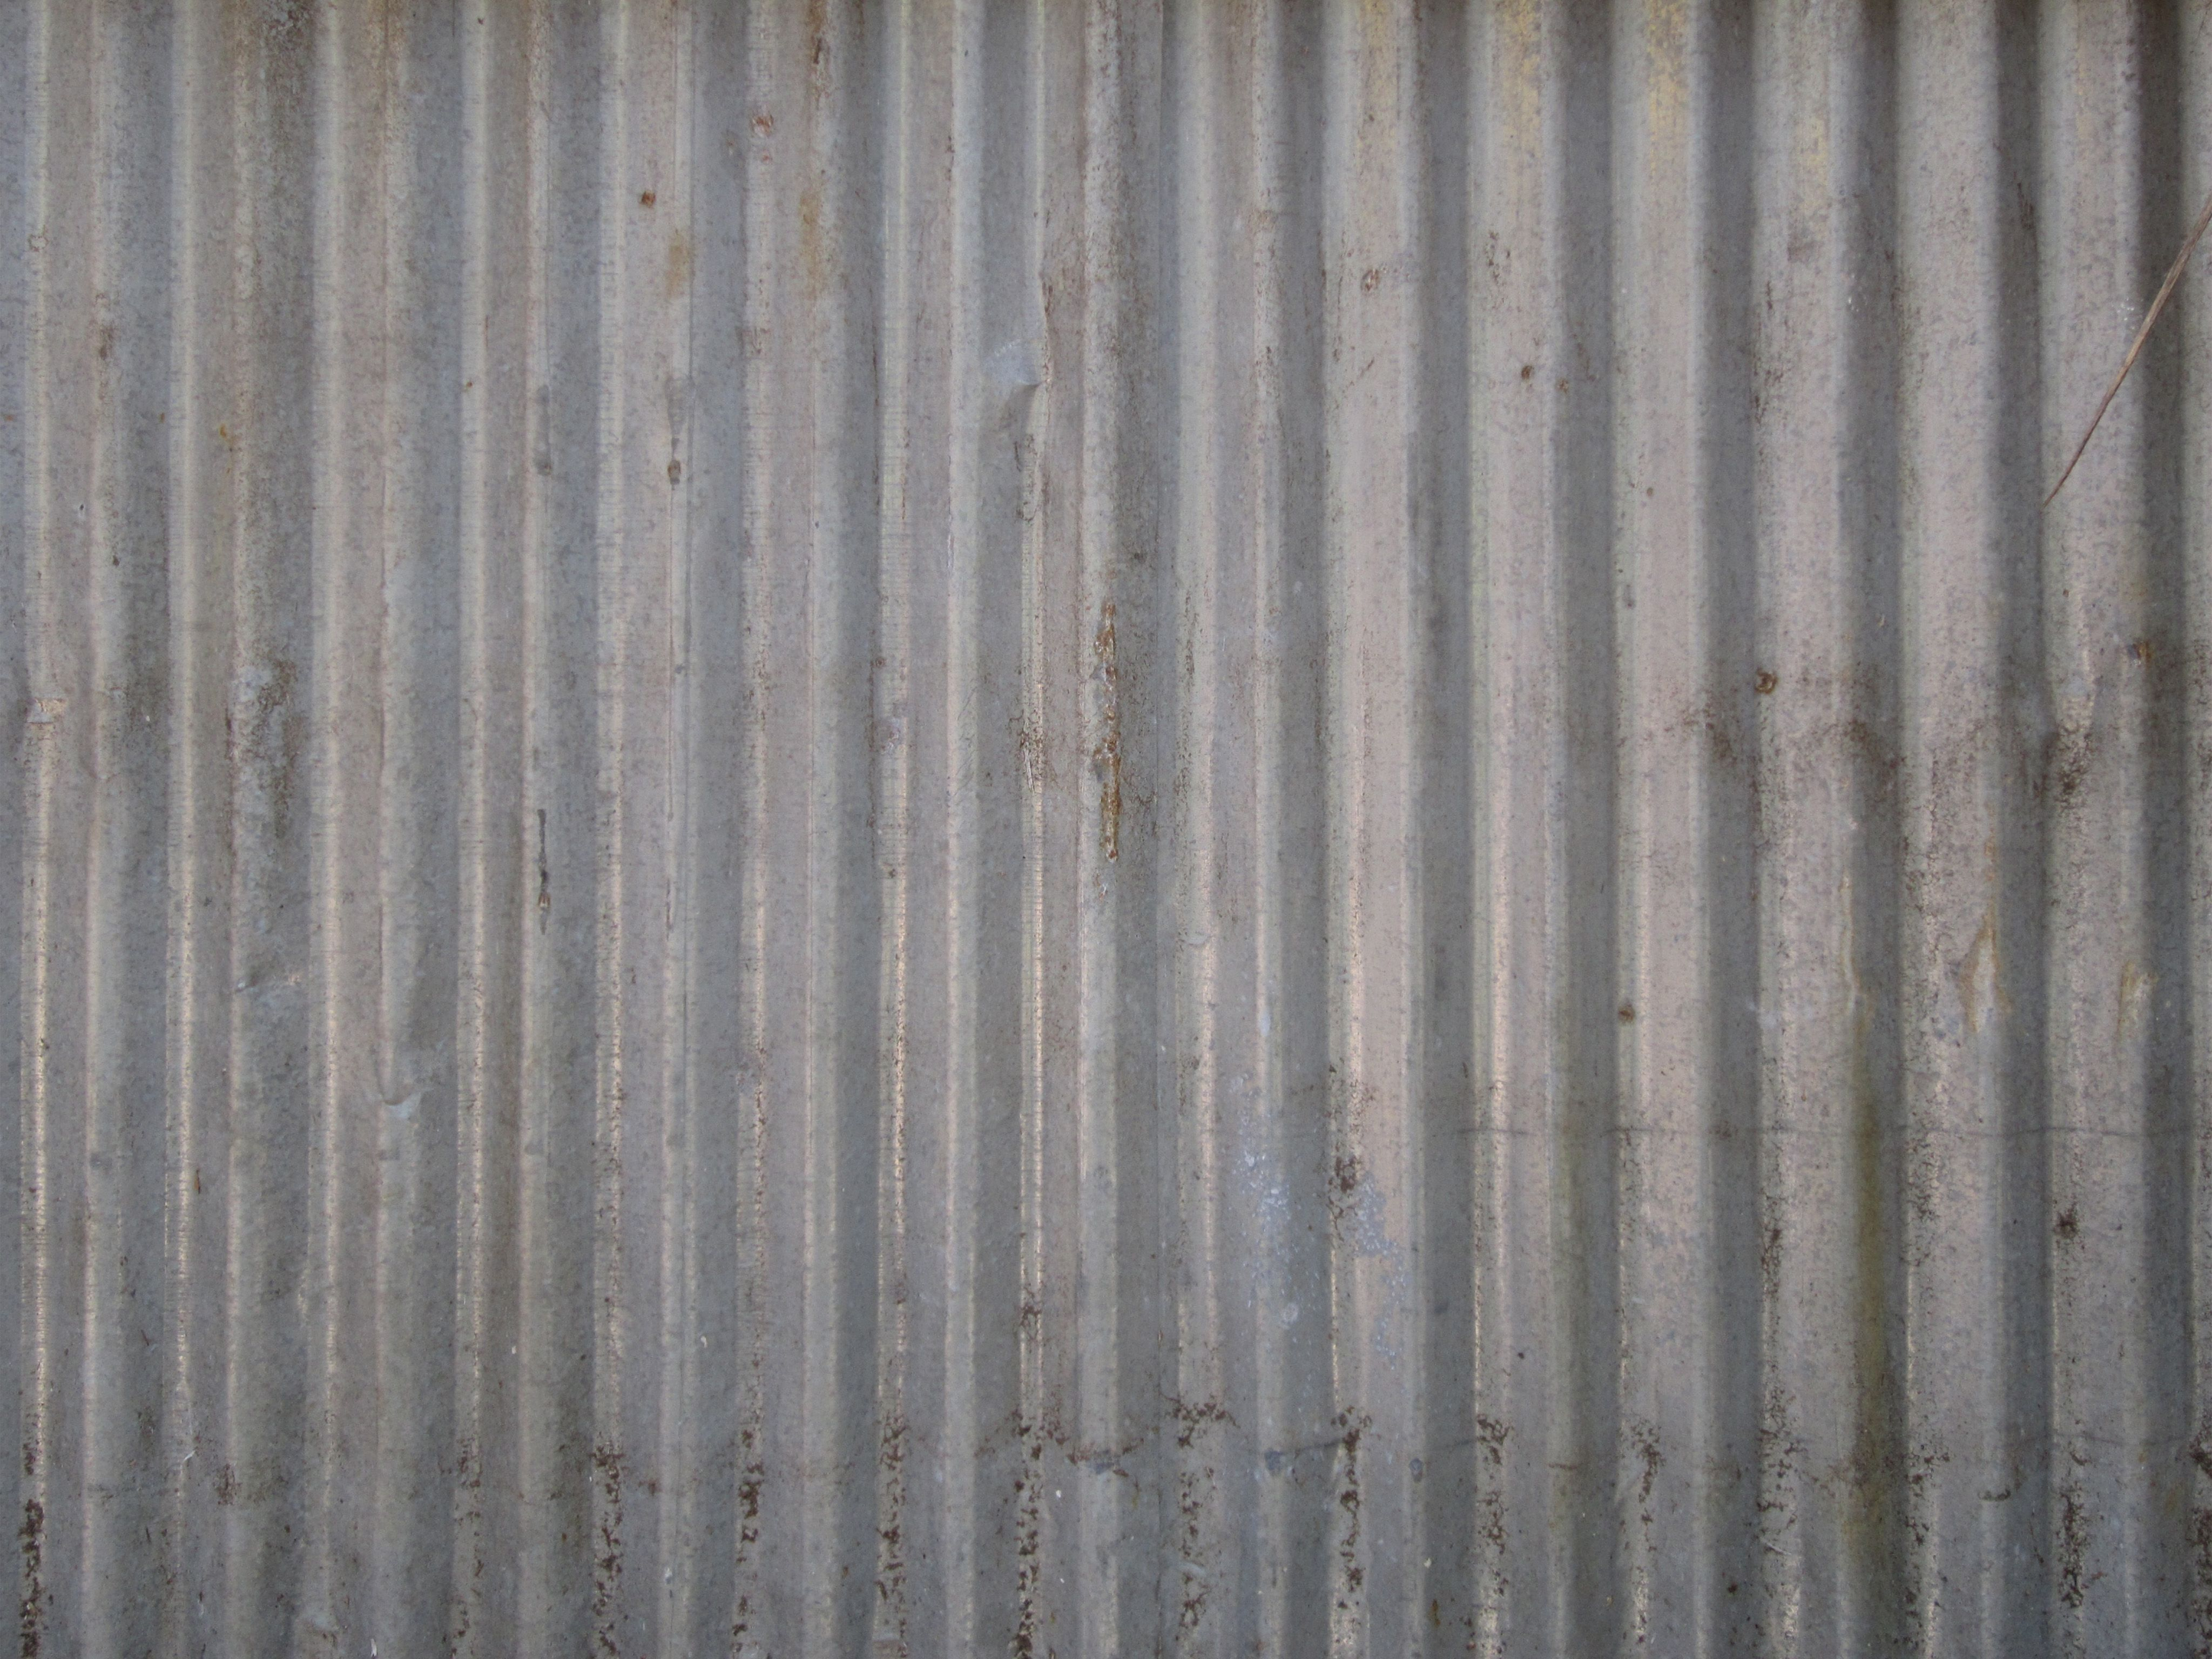 Corrugated Metal Roofing 4096x3072 Corrugated Metal Texture 01 Freecgtexture Urumix Com Corrugated Metal Aluminum Sheet Metal Corrugated Metal Roof